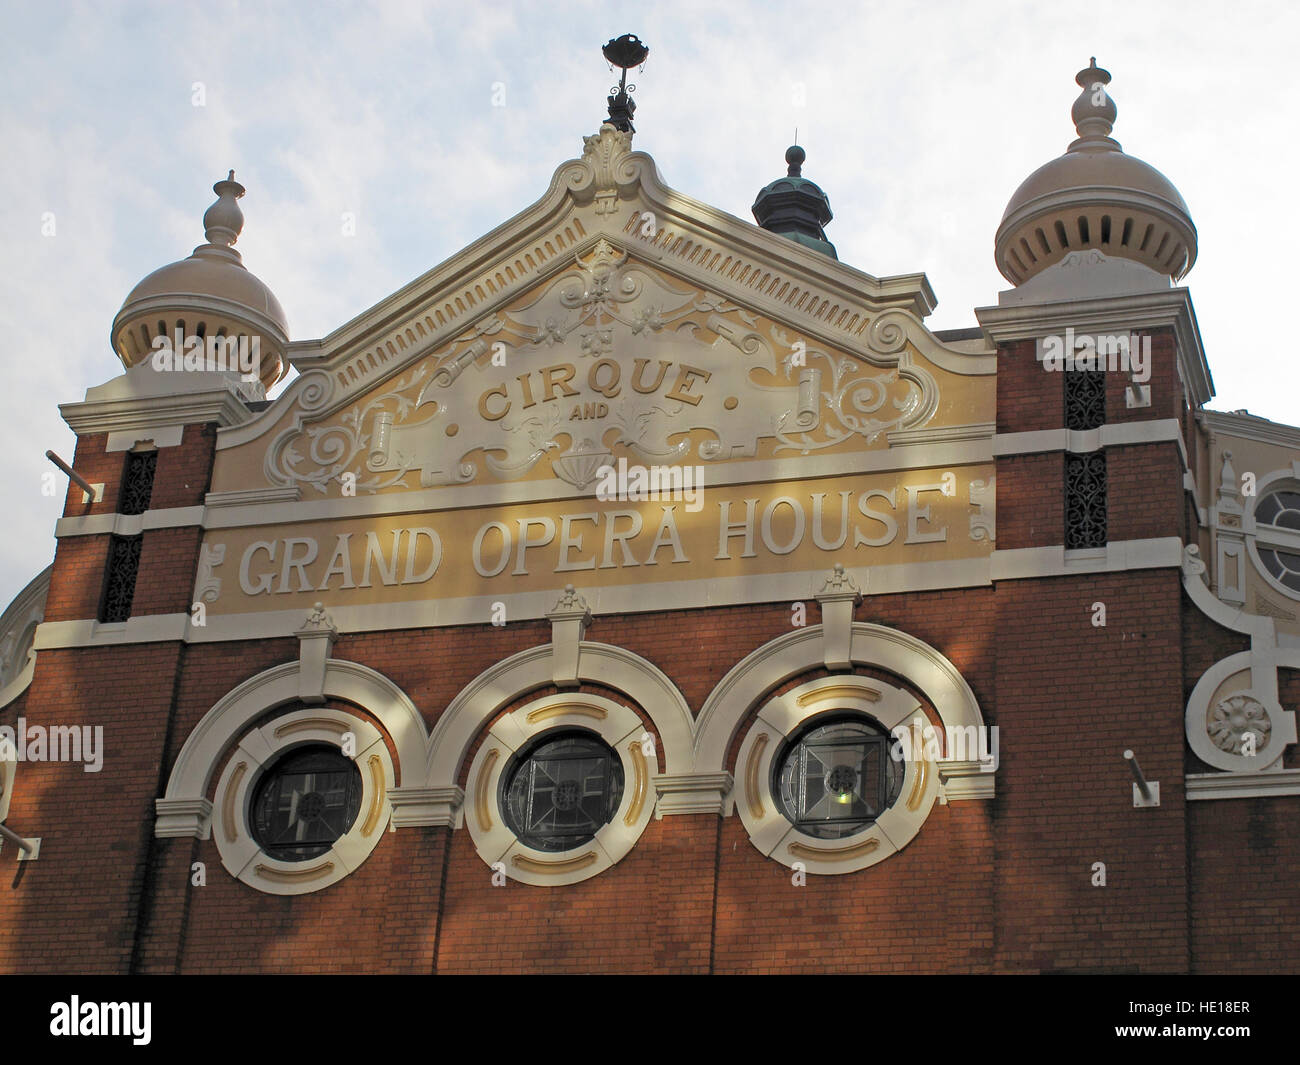 Street,Northern,Ireland,UK,Northern Ireland,Belfast,Grand Opera House,Grand,Opera,House,Frank Matcham,theatre architecture,theatre,architecture,BT2 7HR,BT2,Great Victoria St,Great,Victoria,Sreet,Cirque,Circus,Opera House,city,centre,city centre,GoTonySmith,@HotpixUK,Tony,Smith,UK,GB,Great,Britain,United,Kingdom,Irish,British,Ireland,problem,with,problem with,issue with,NI,Northern,Northern Ireland,Belfast,City,Centre,Actor,Actors,play,theatre,Art,Artists,the,troubles,The Troubles,Peace,Beal,feirste,social,tour,tourism,tourists,urban,six,counties,6,backdrop,county,Antrim,Buy Pictures of,Buy Images Of,Images of,Stock Images,Tony Smith,United Kingdom,Great Britain,British Isles,Grand,Opera,House,Trust,Irish History,Ireland History,Northern Ireland History